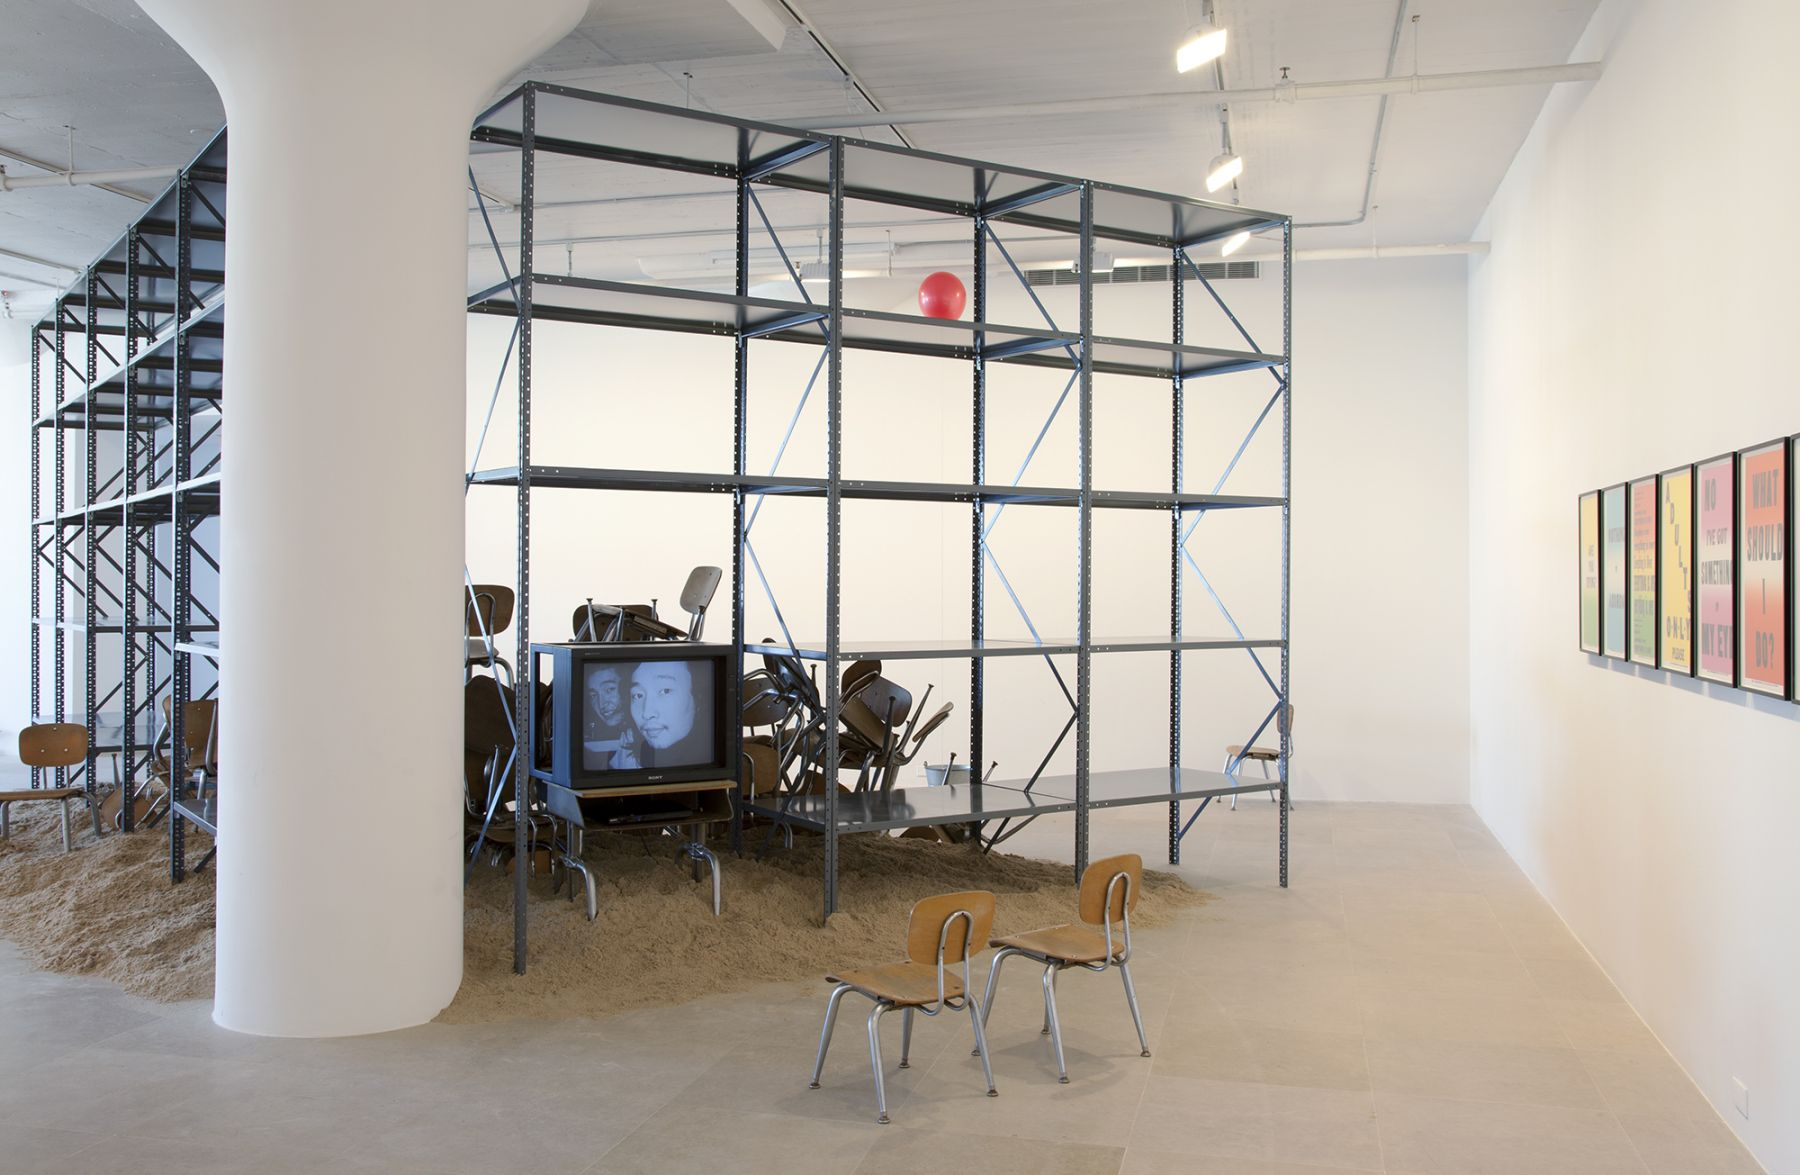 Haim Steinbach, Mothers, Daughters, Children (with '37 Stories About Leaving Home' by Shelly Silver), 1997-2011, metal shelving, sand, wood and metal tables, wood and metal chairs, LCD TV, galvanized bucket, and latex ballon, installation dimensions variable, Installation view, Greene Naftali, New York, 2012